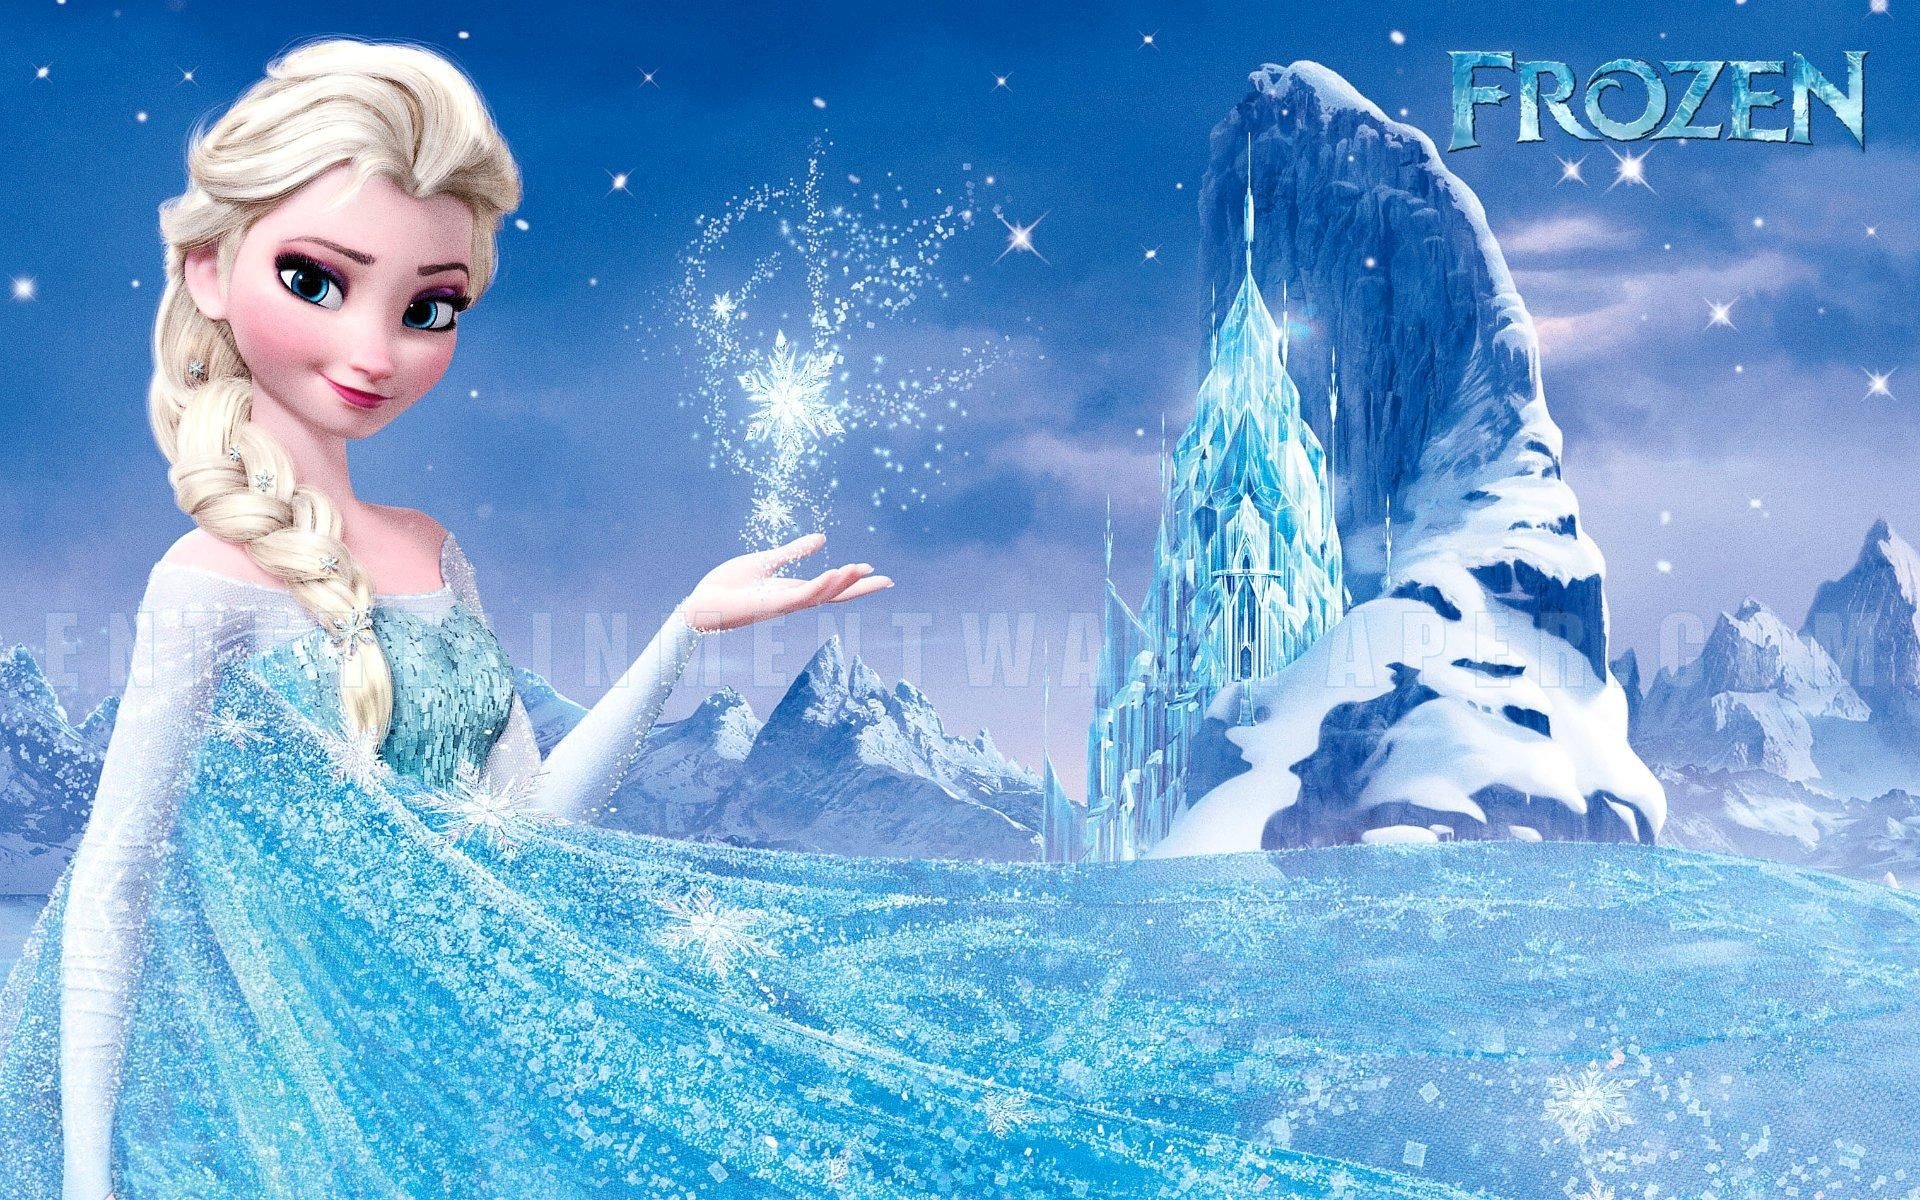 frozen elsa | hd wallpapers (high resolution) 1080p free download